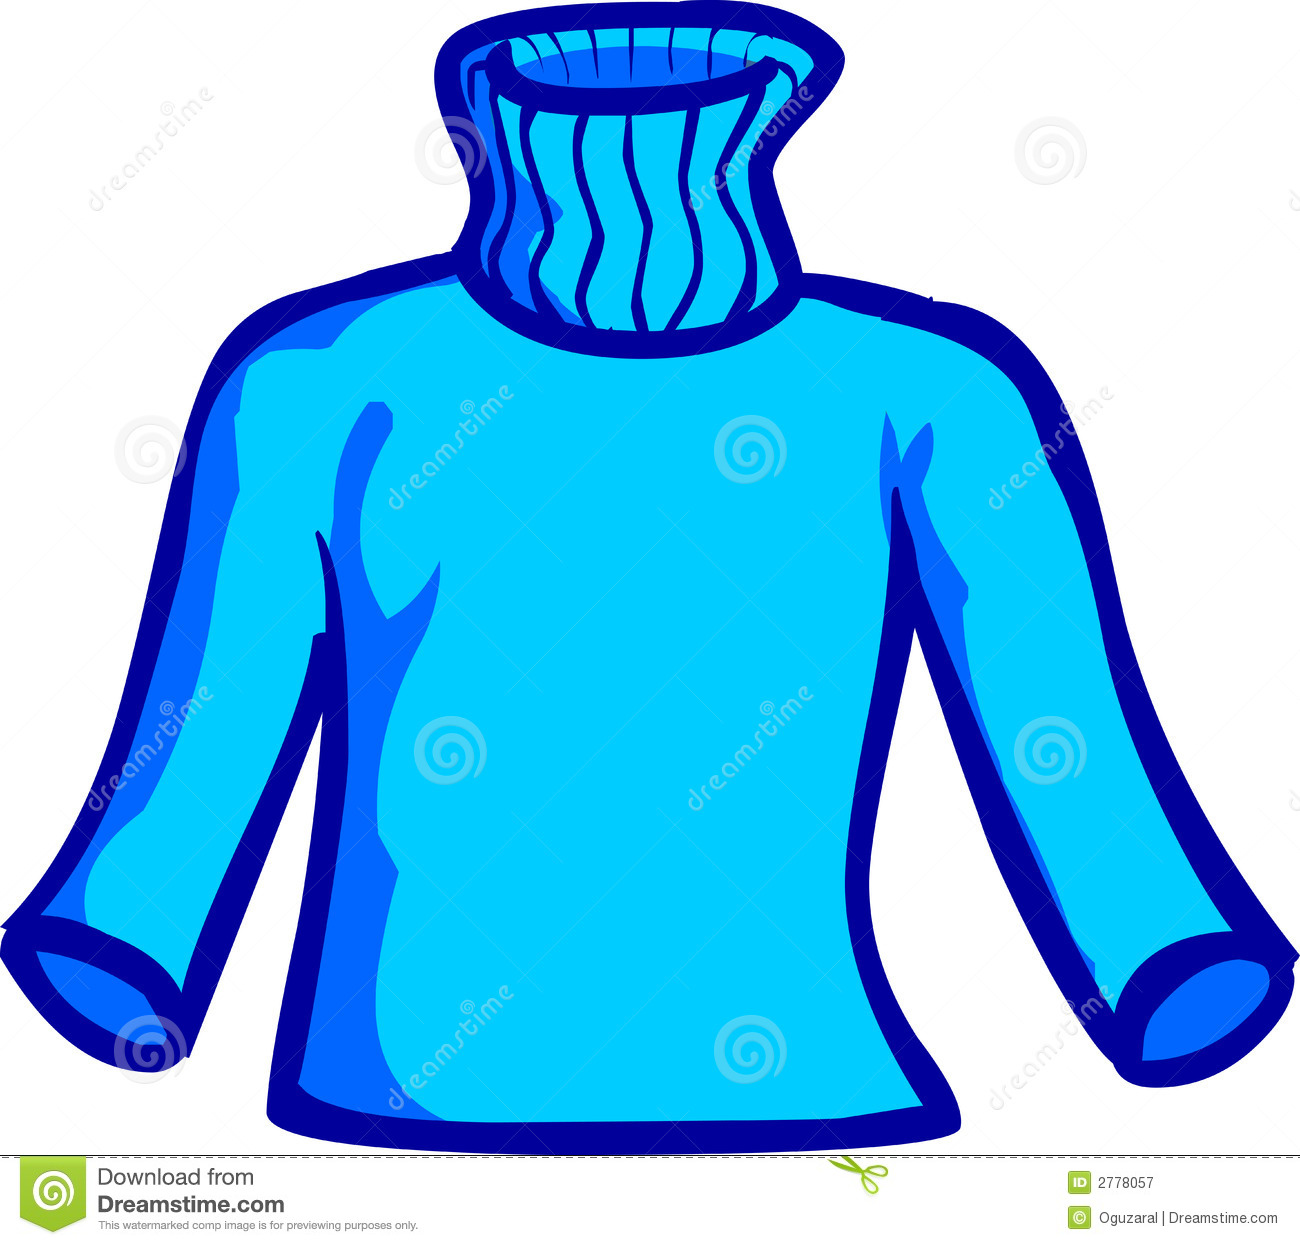 Clipart sueter image royalty free Sweater Clipart | Free download best Sweater Clipart on ClipArtMag.com image royalty free